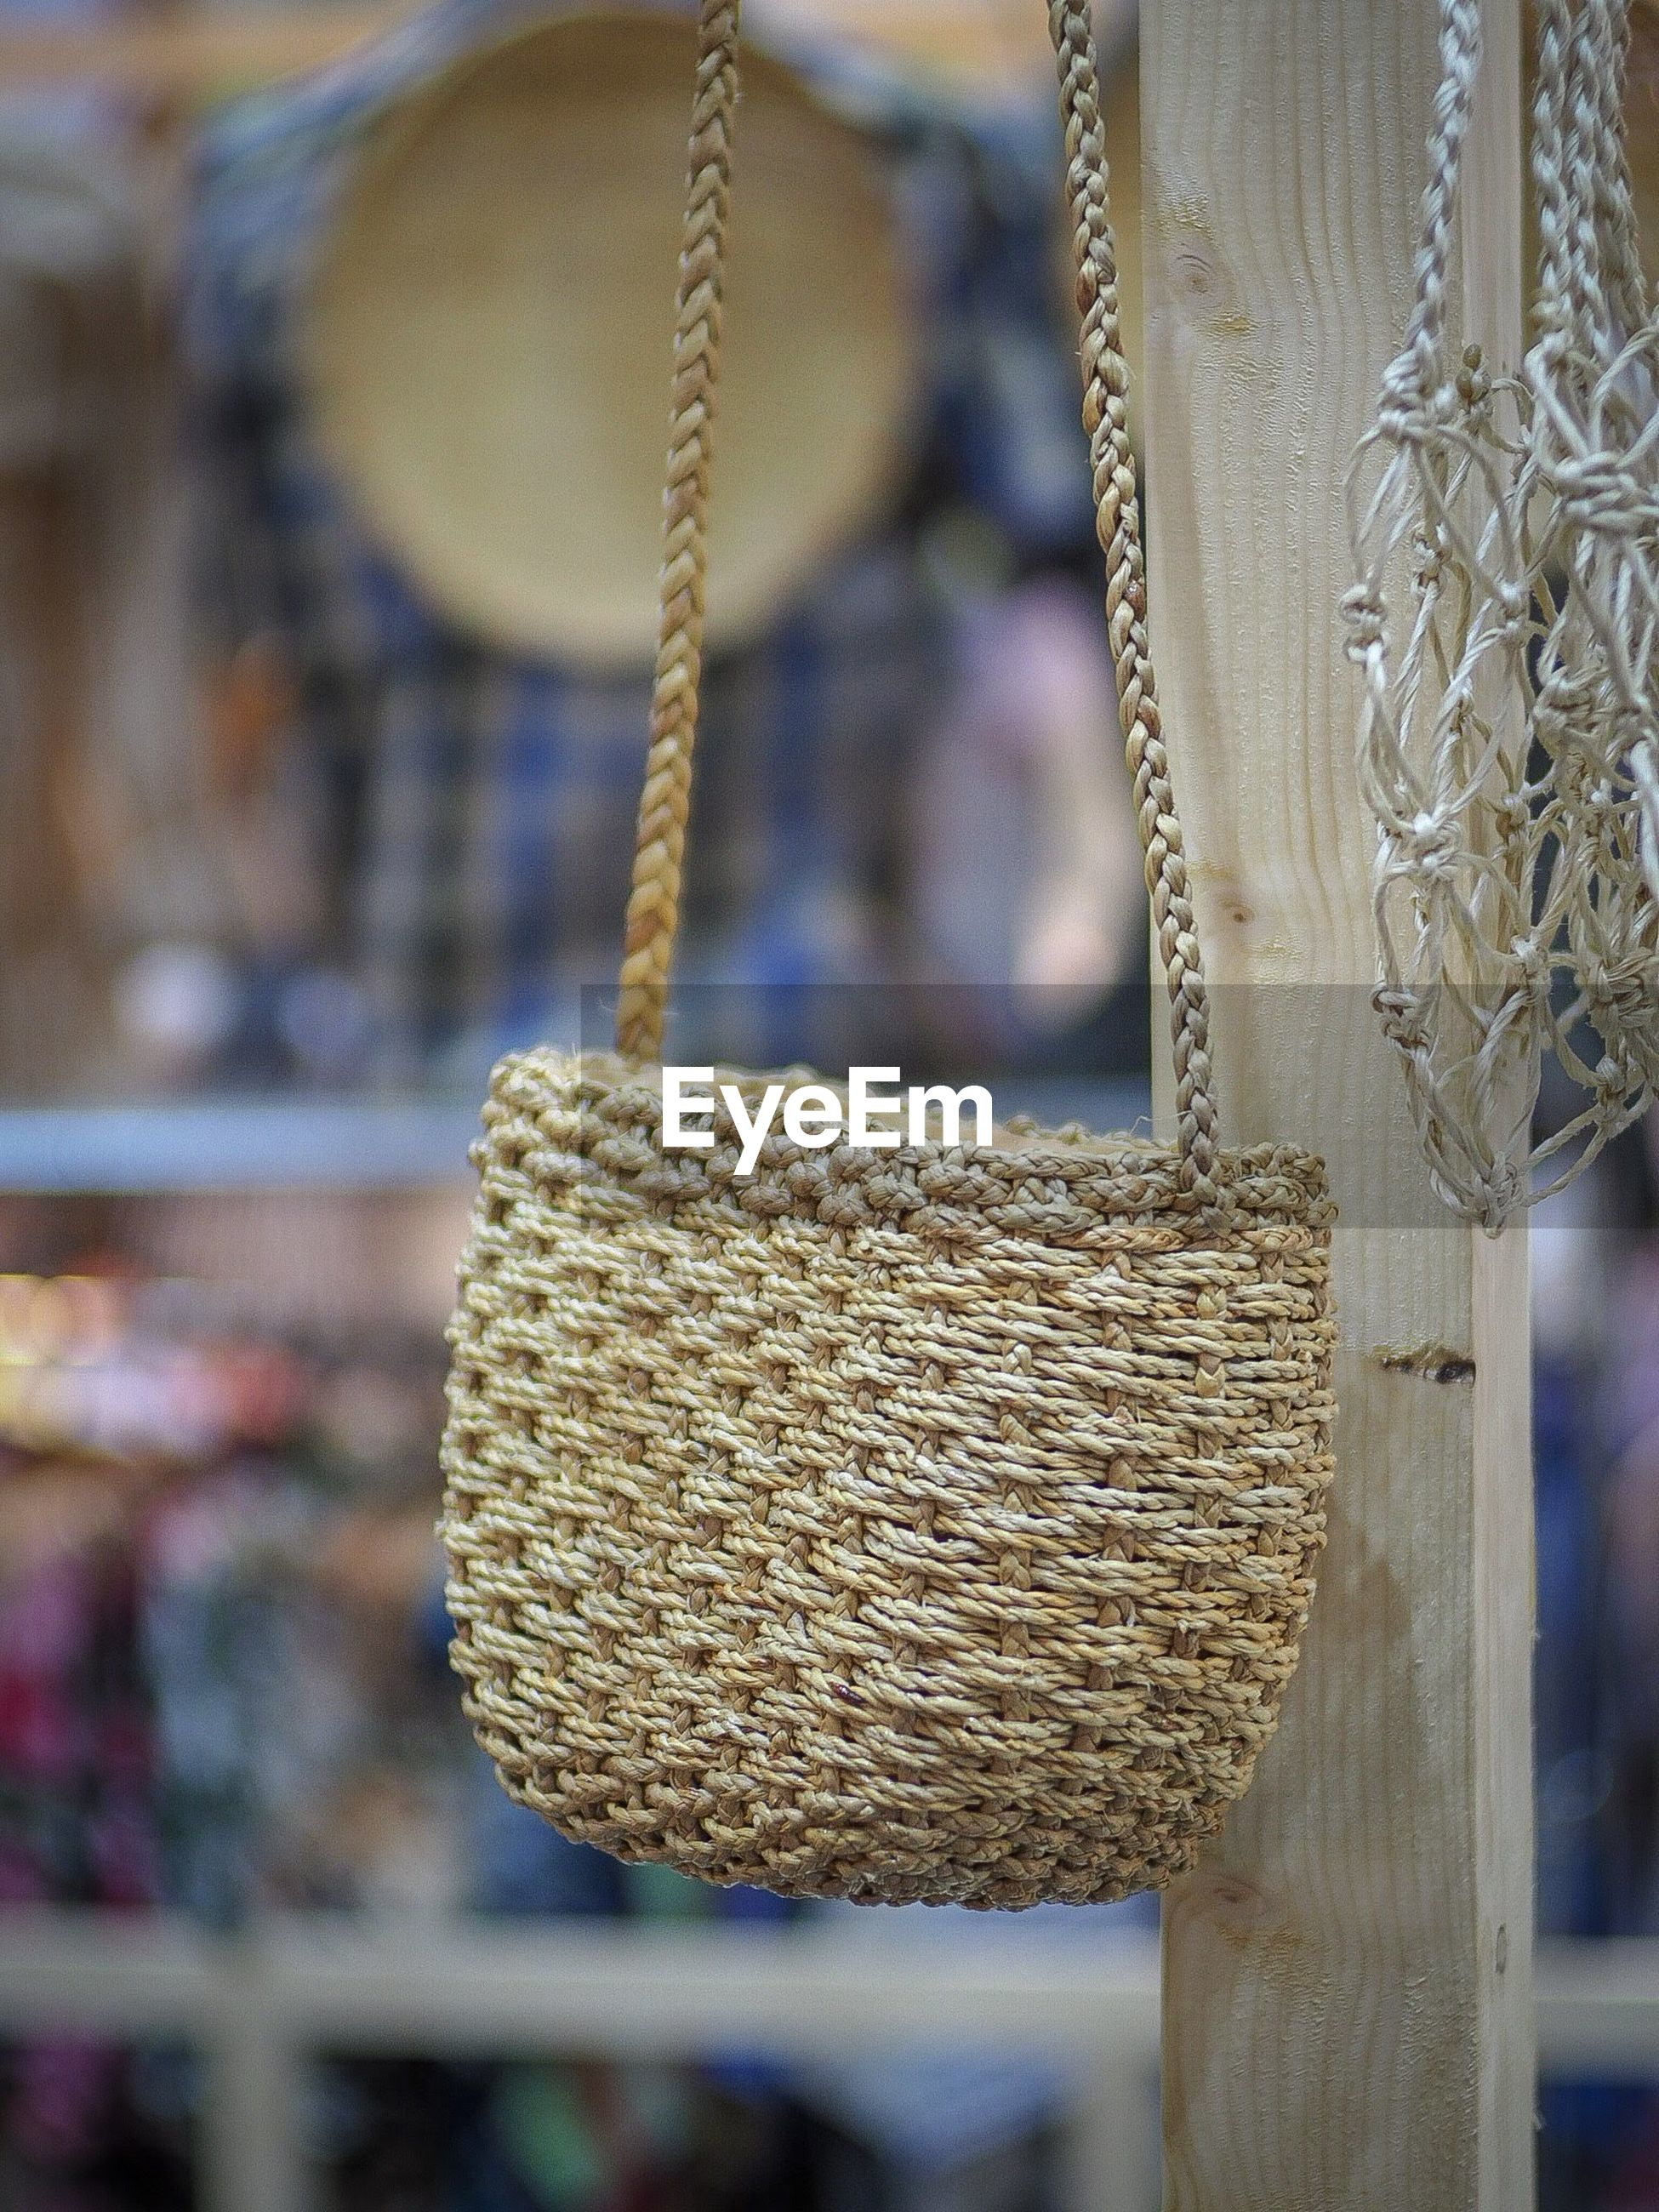 Basket for sale at store